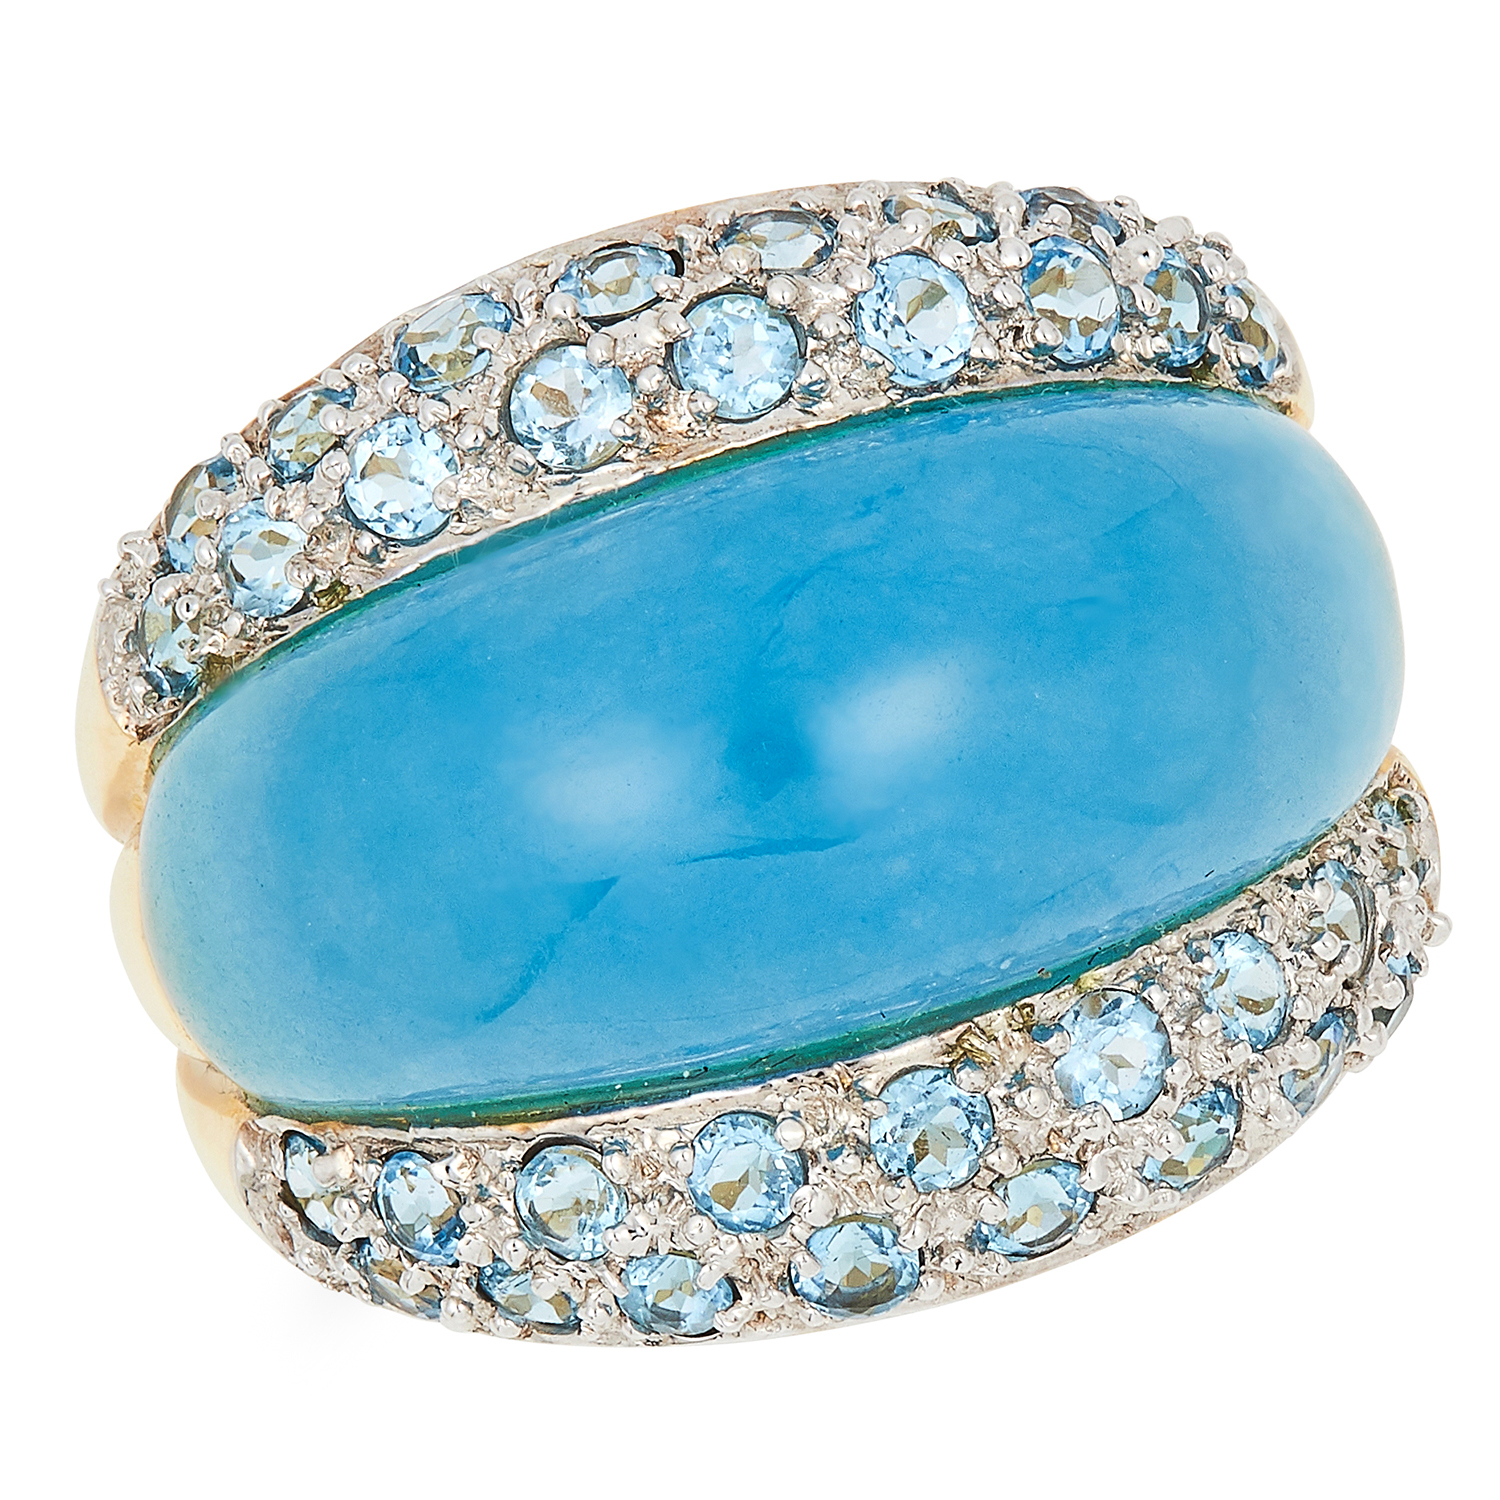 BLUE HARDSTONE BOMBE RING, set with a blue hard stone and round cut blue stones, size M / 6, 7.1g.